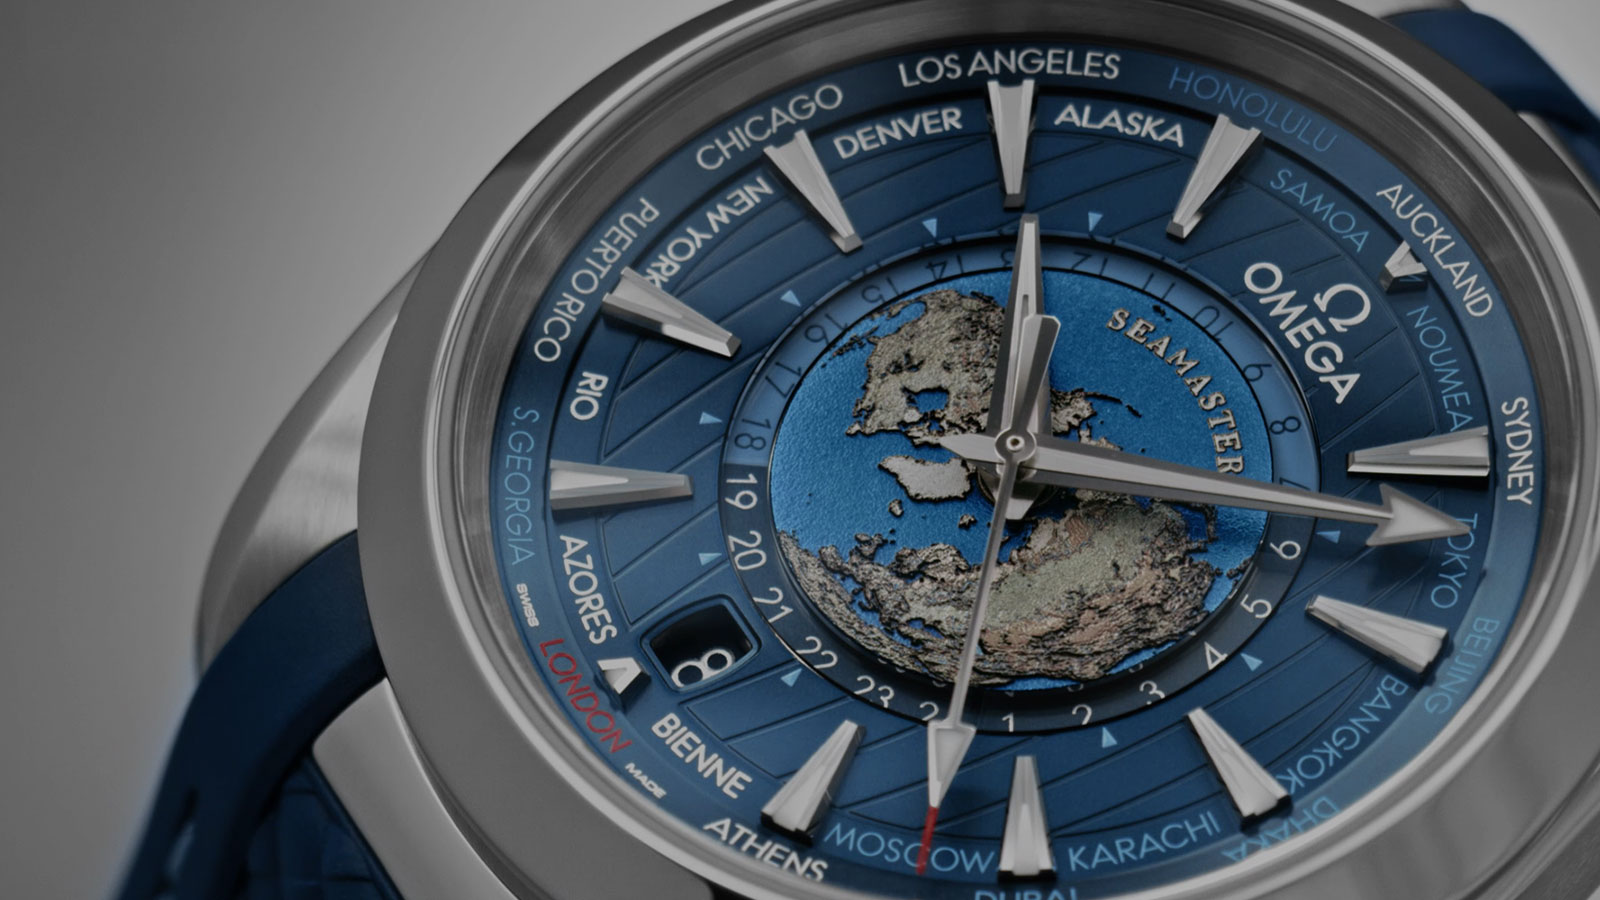 Seamaster Worldtimer Watch 220.12.43.22.03.001 - Video - 70676